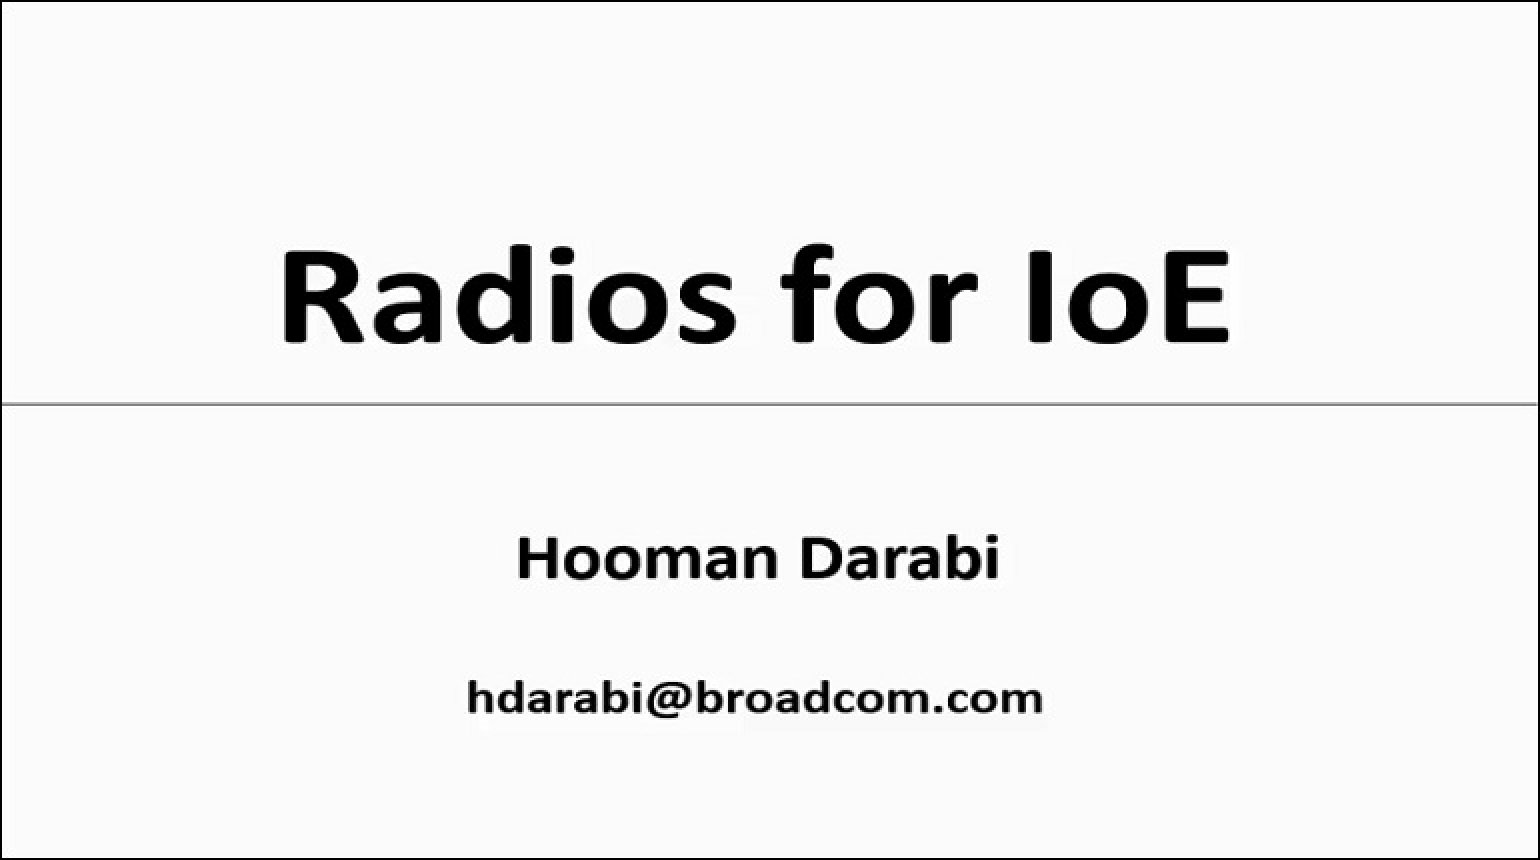 Radios for IoE Video